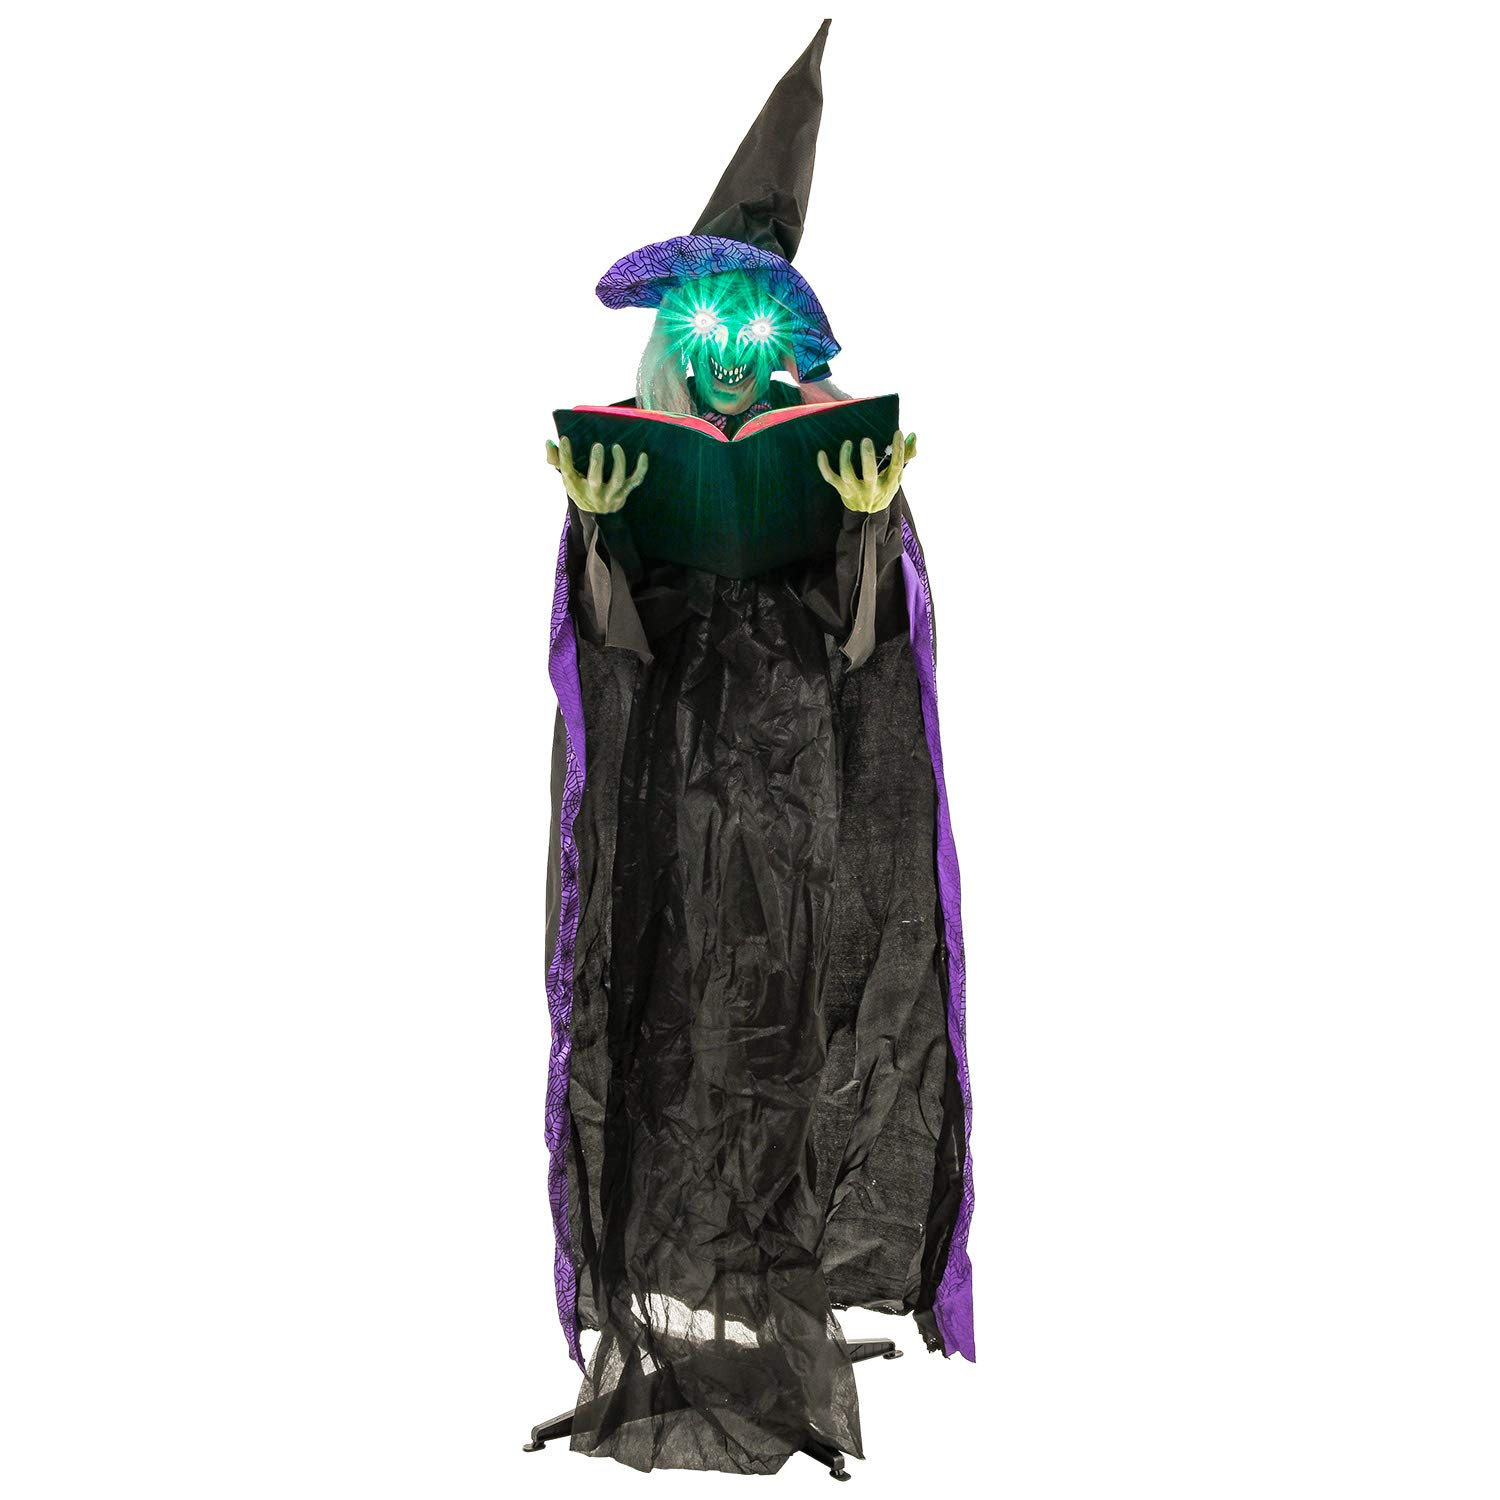 Halloween Haunters 6 Foot Animated Standing Wicked Witch with Spell Casting Book Prop Decoration - Black and Purple Hat, Speaks, Cackles, Flashing Green LED Eyes, Witches Brew